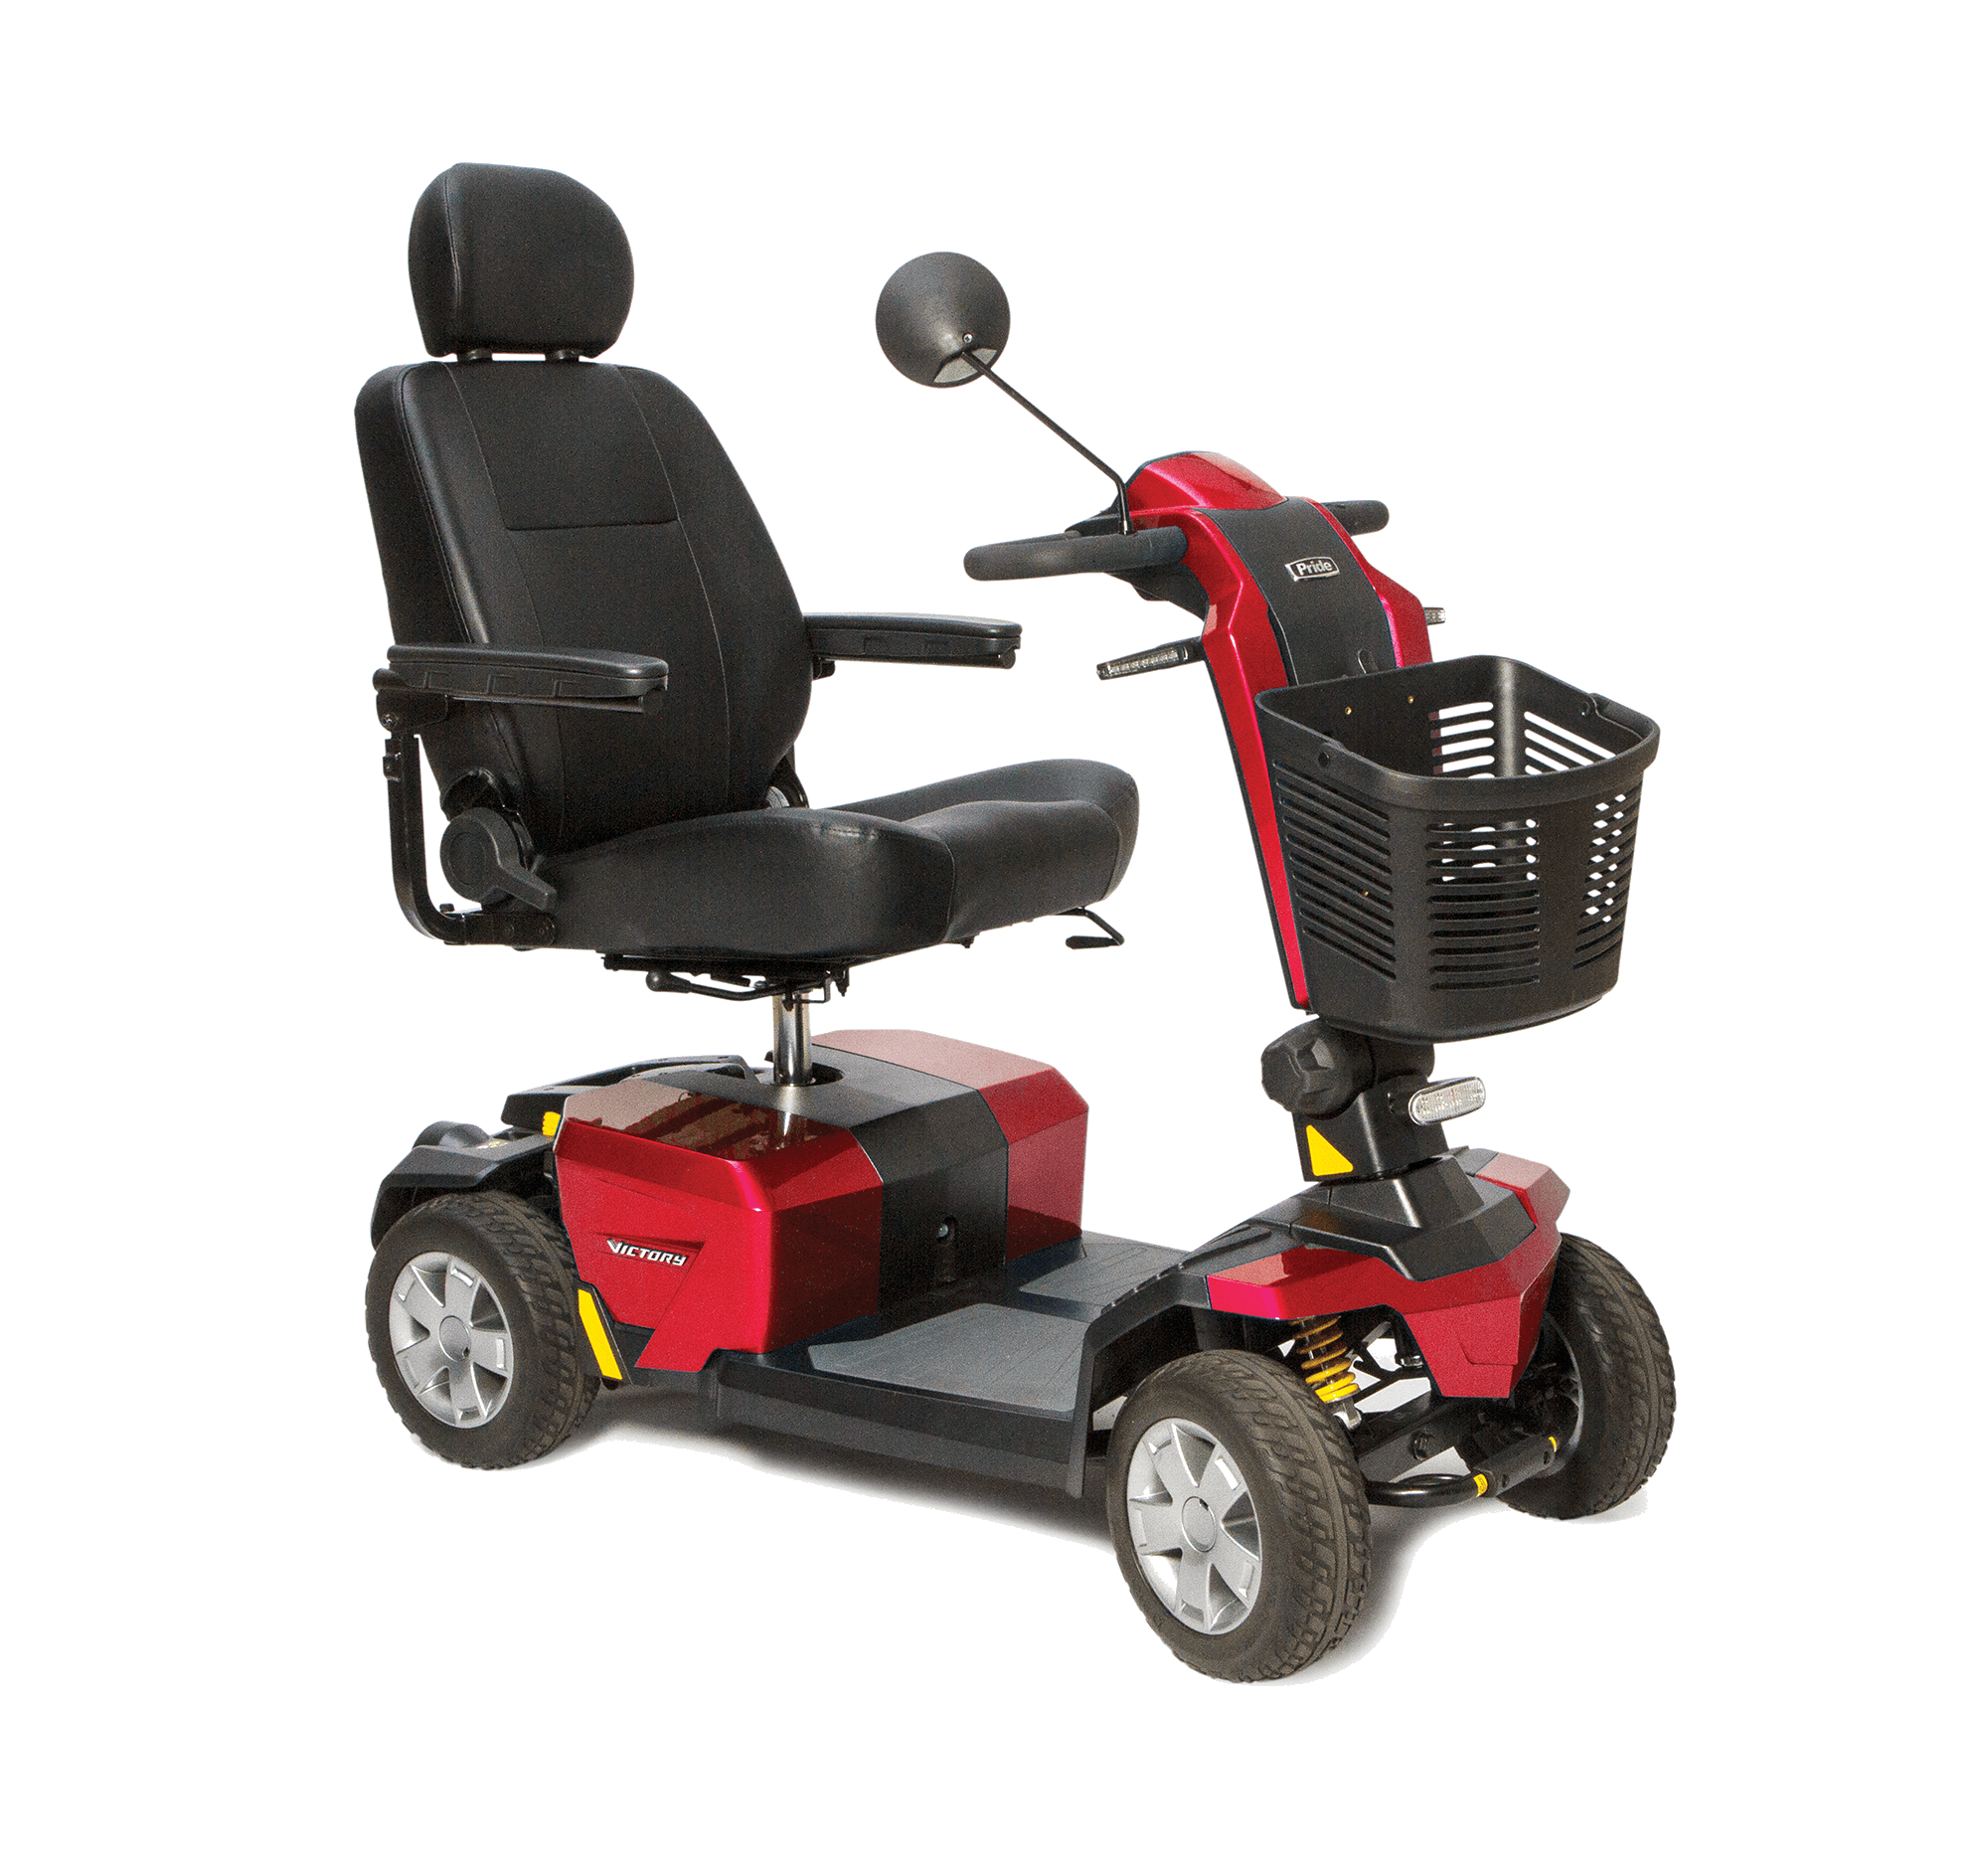 pride victory 10 lx 4 wheel scooter care motion rh caremotion com pride mobility victory scooter owners manual Pride Mobility Sundancer Scooter Manual